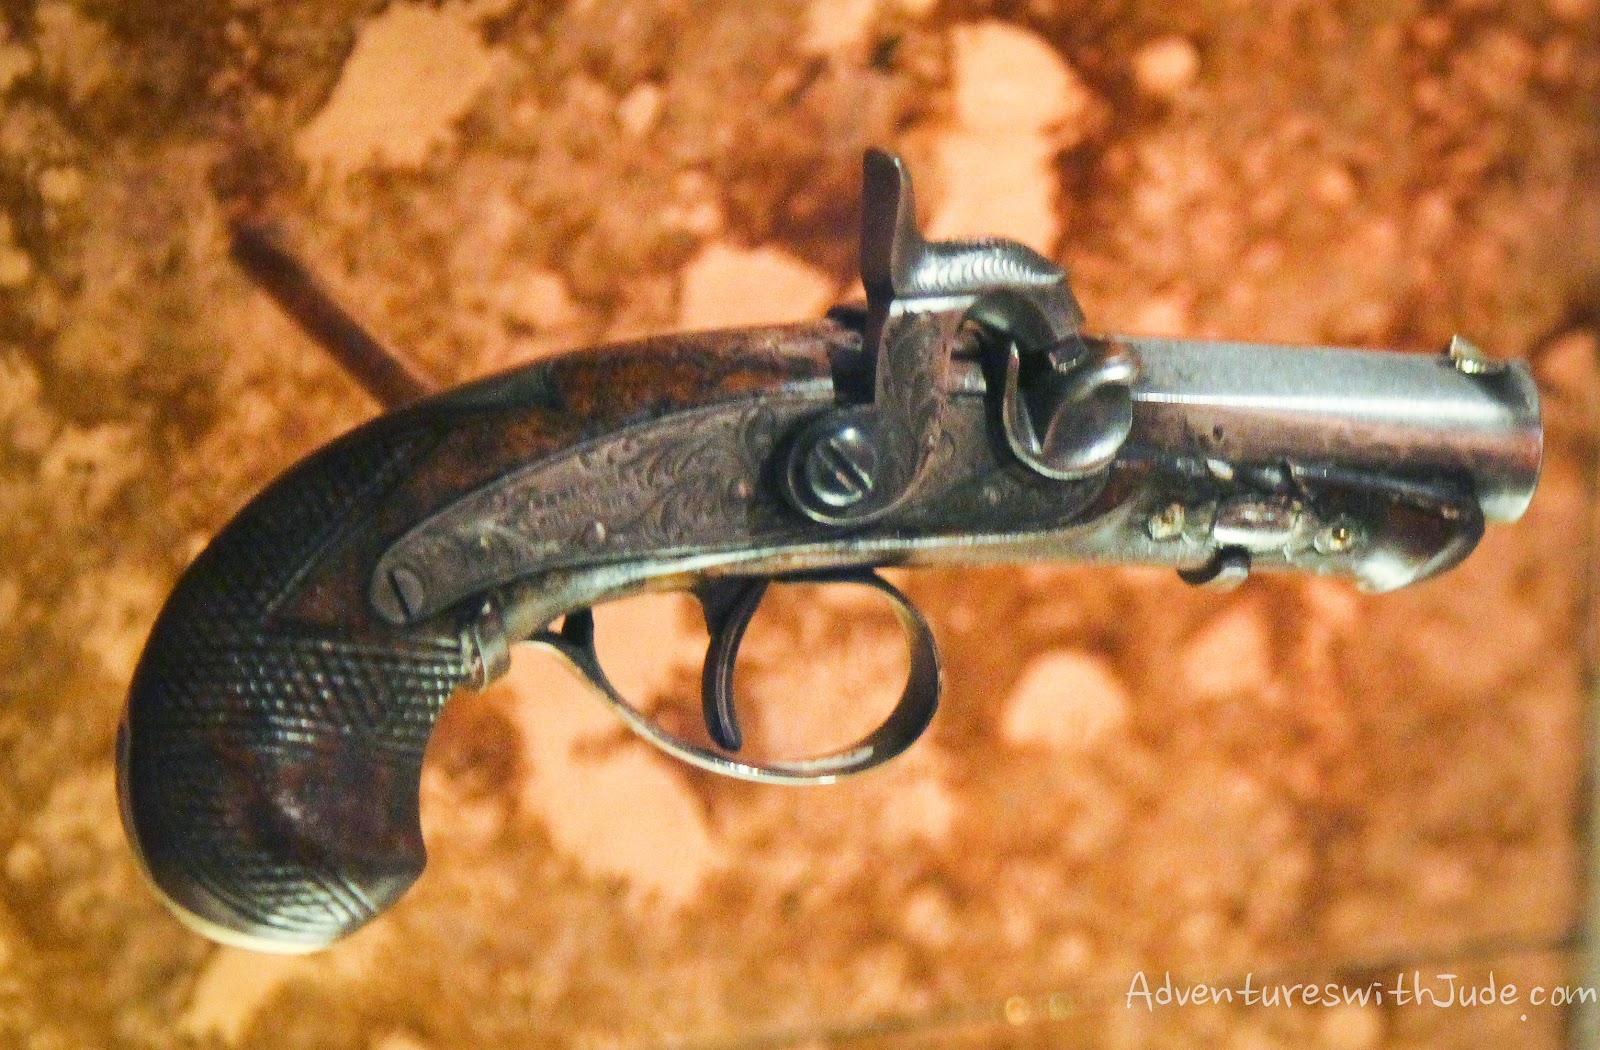 Pistol assassinated Abraham Lincoln